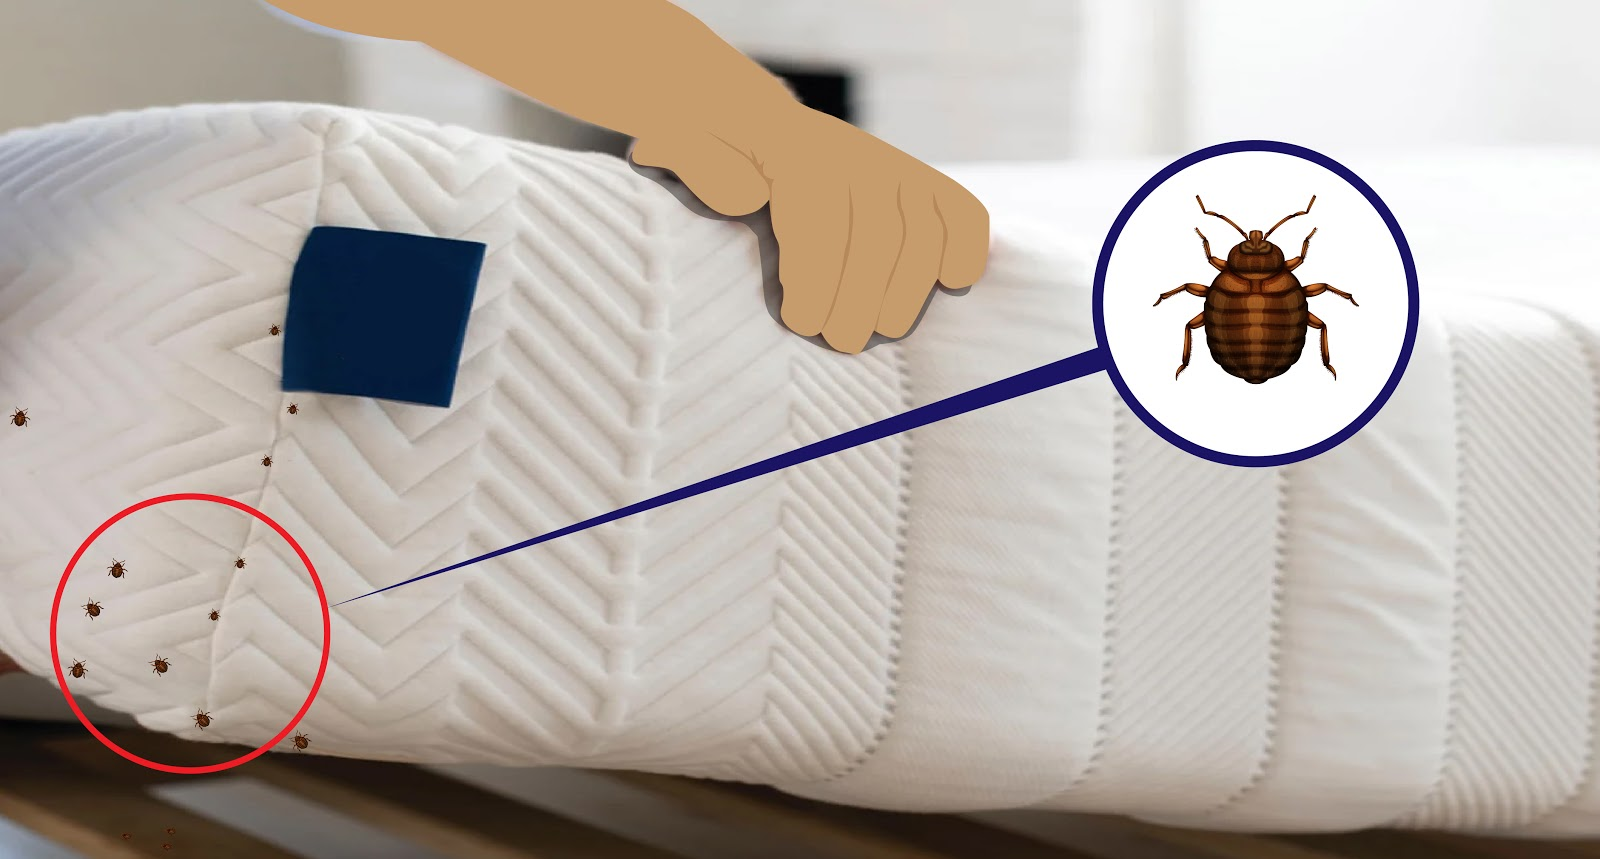 Photo a mattress (no sheets) with illustrated bed bugs